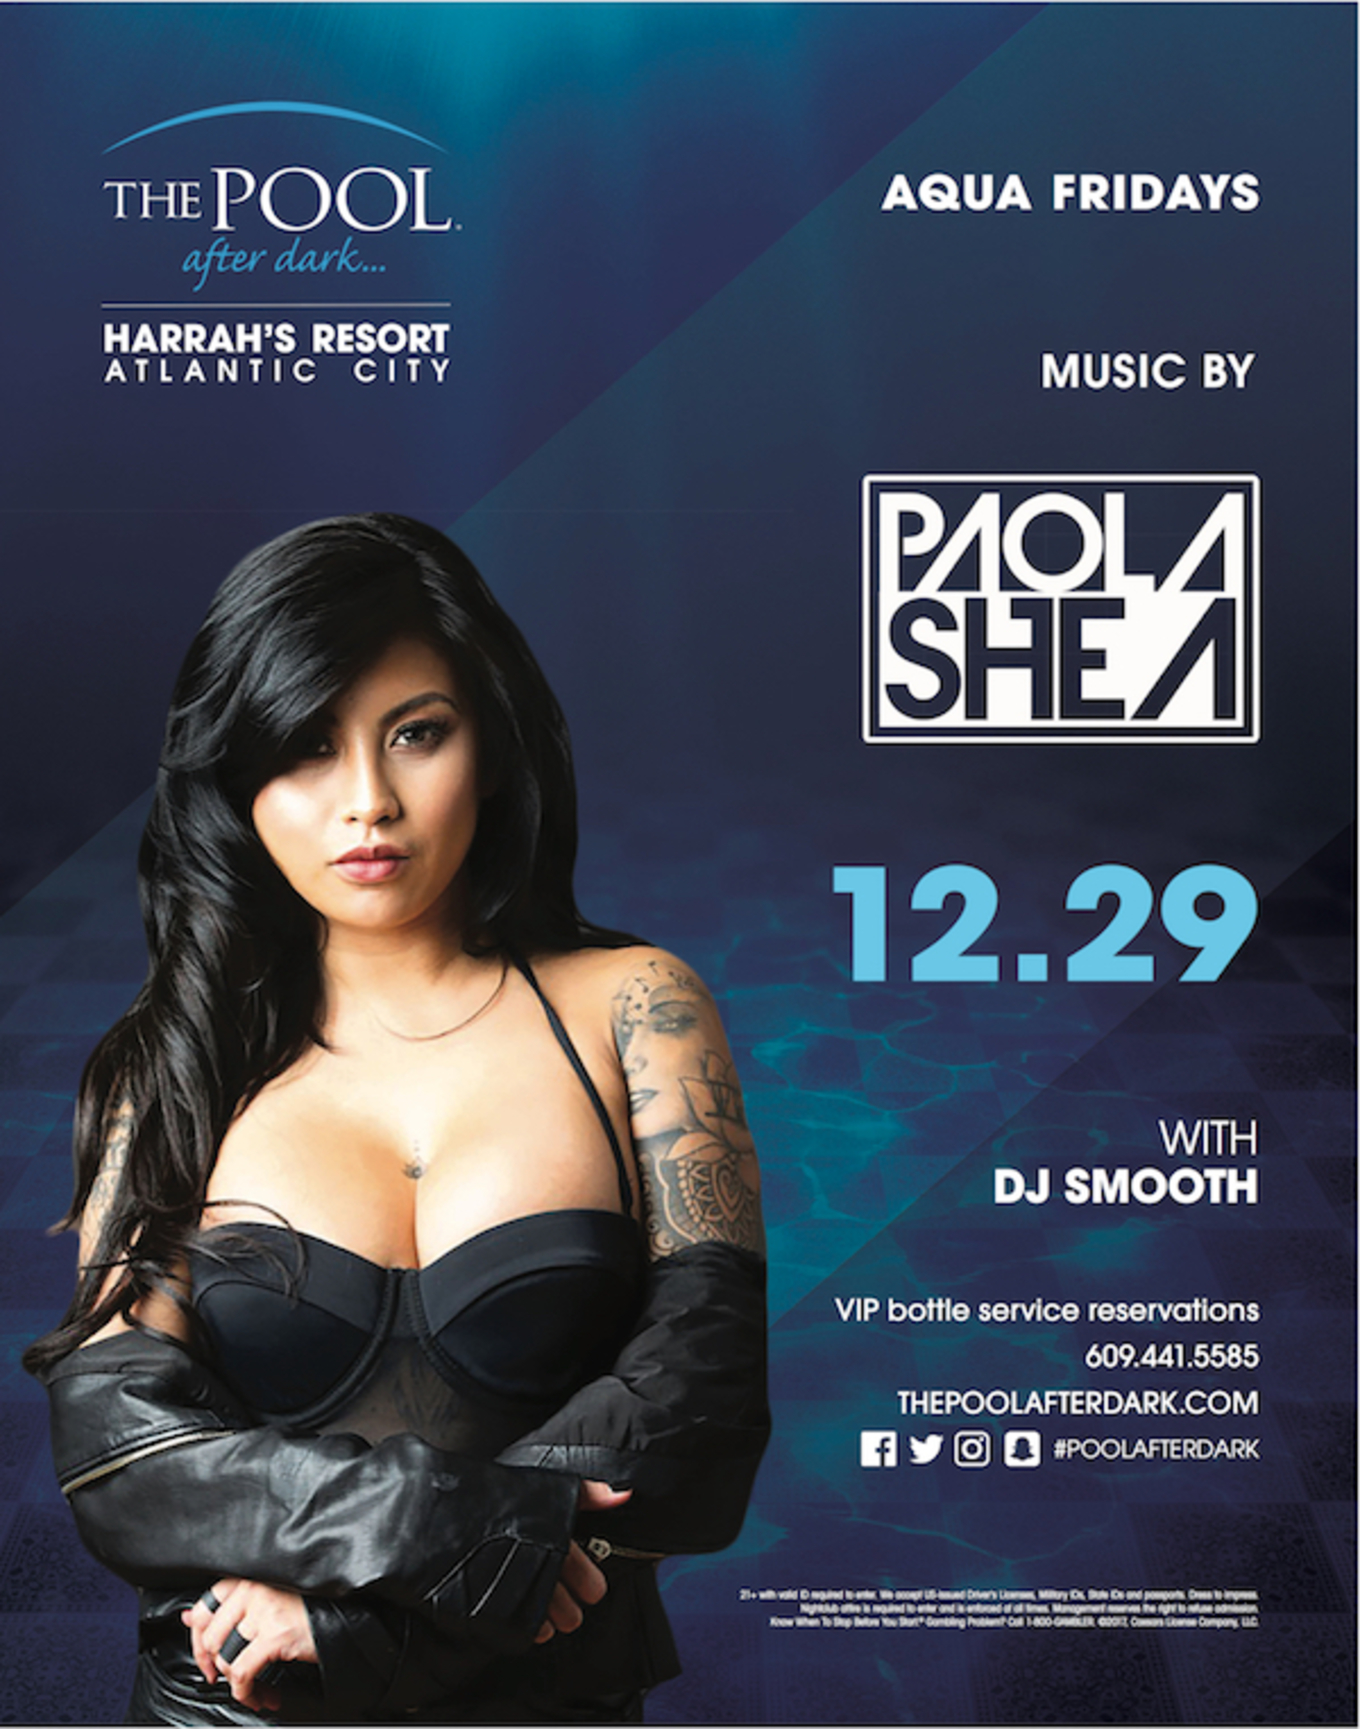 DJ Paola Shea returns to The Pool After Dark   Gallery